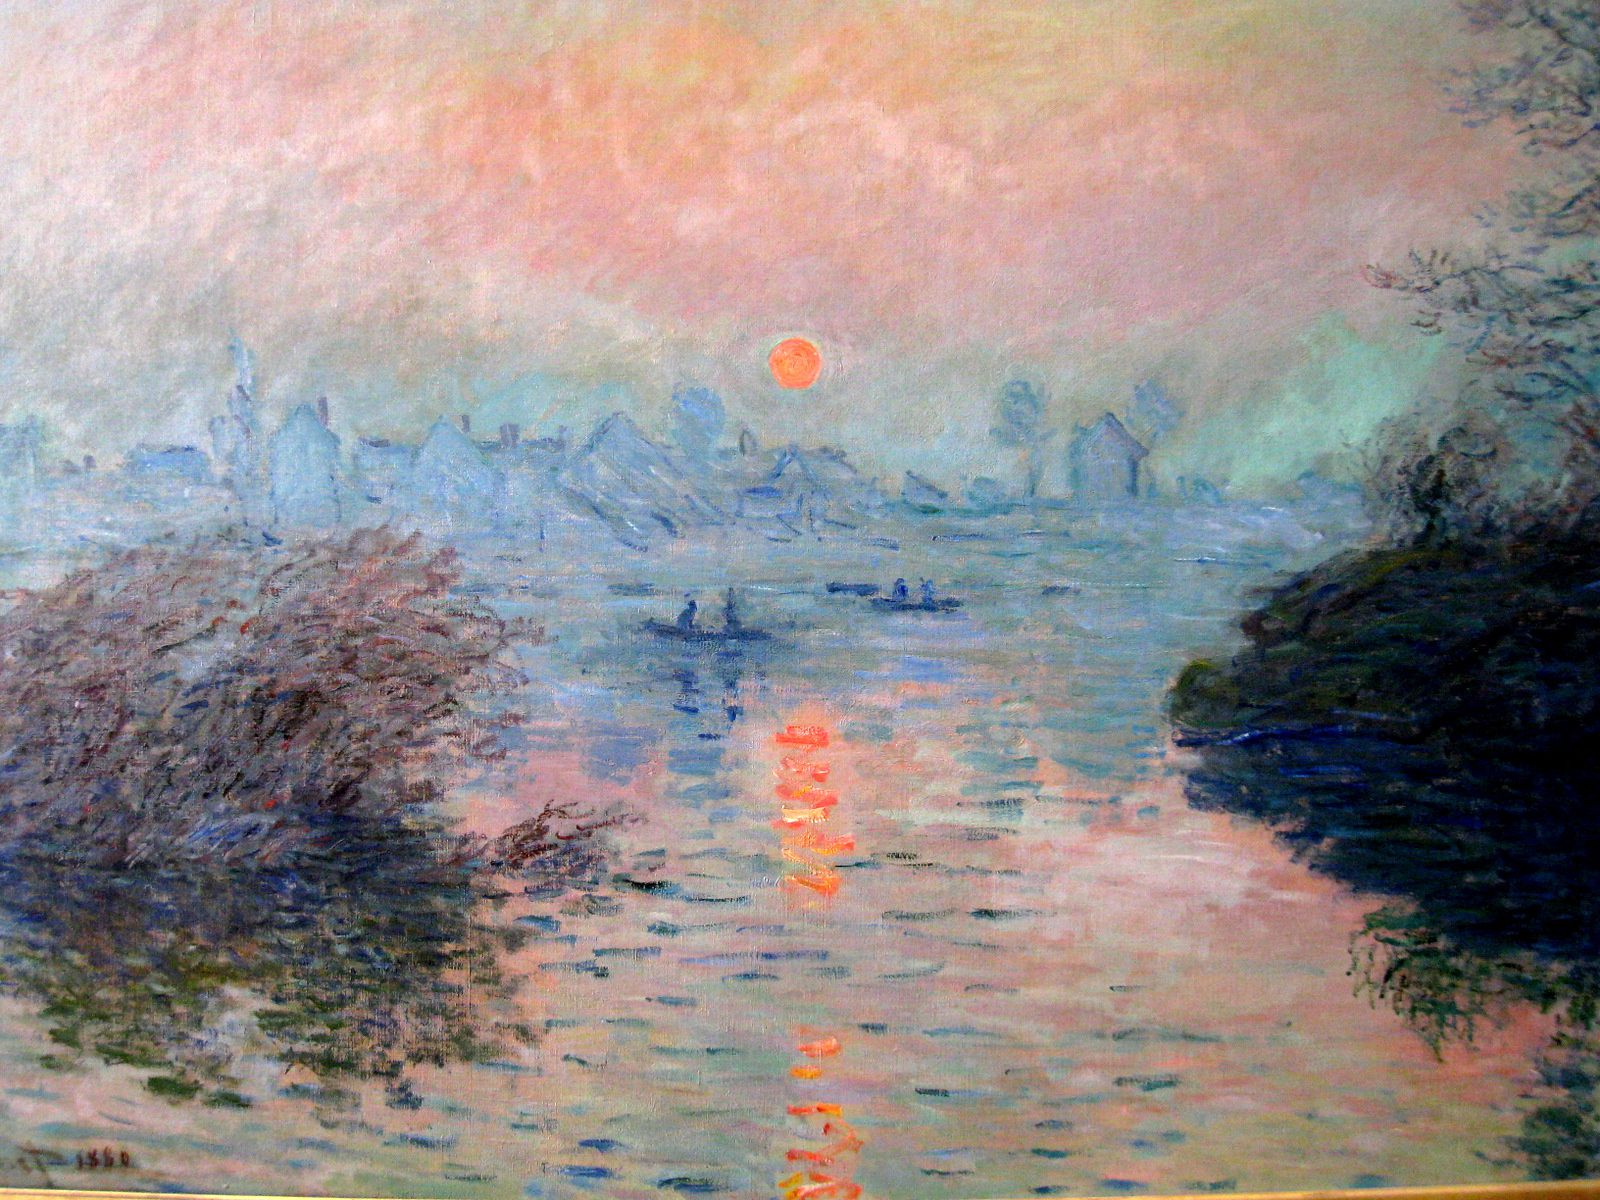 soleil couchant ..., tableau de Claude Monet